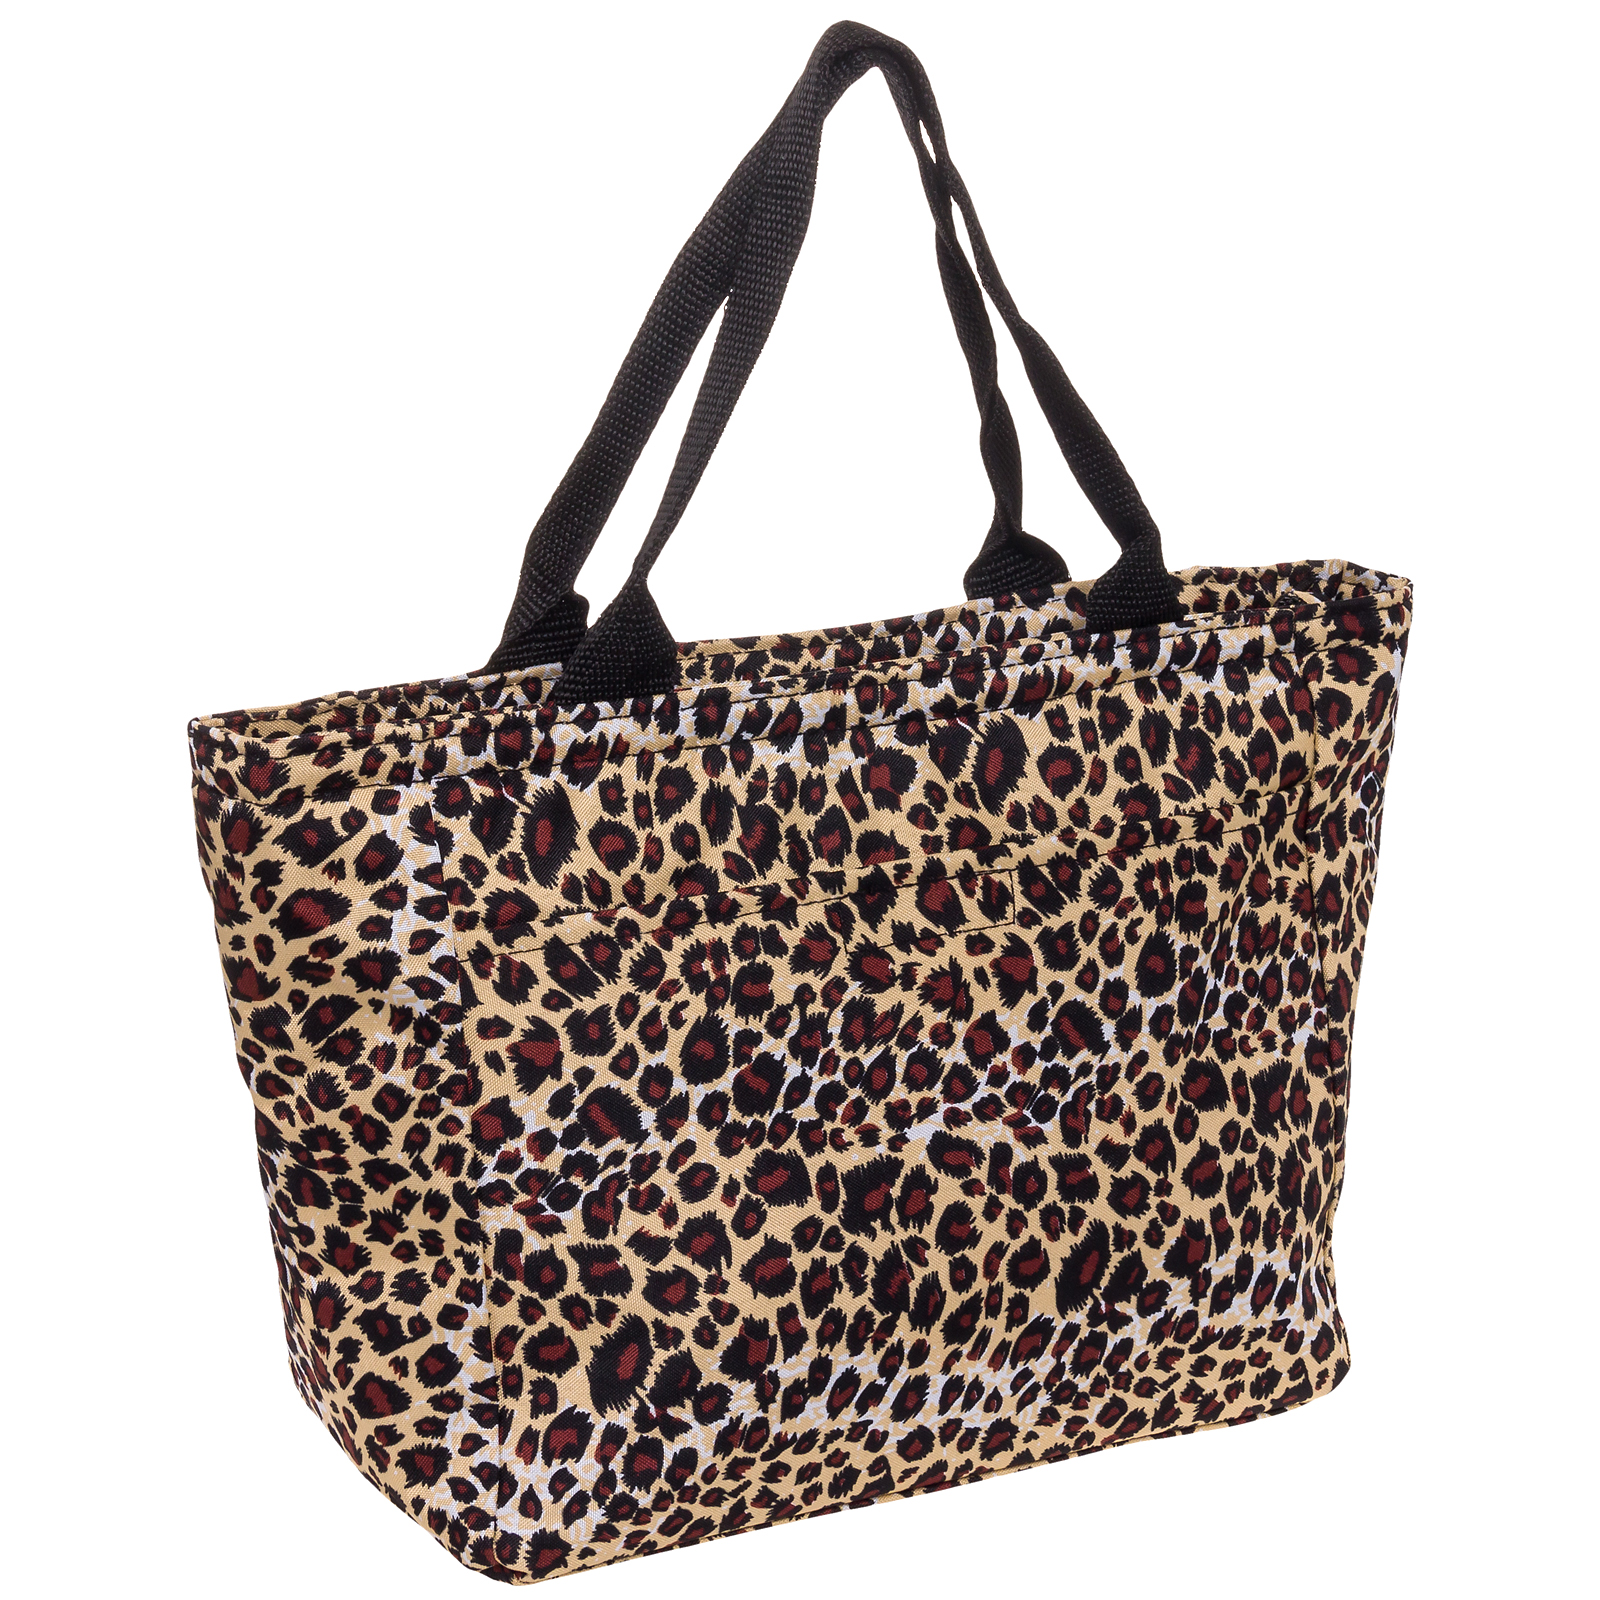 Simple Fit U0026 Fresh Ladies Retro Insulated Lunch Bag (Womens Thermal Tote) | EBay